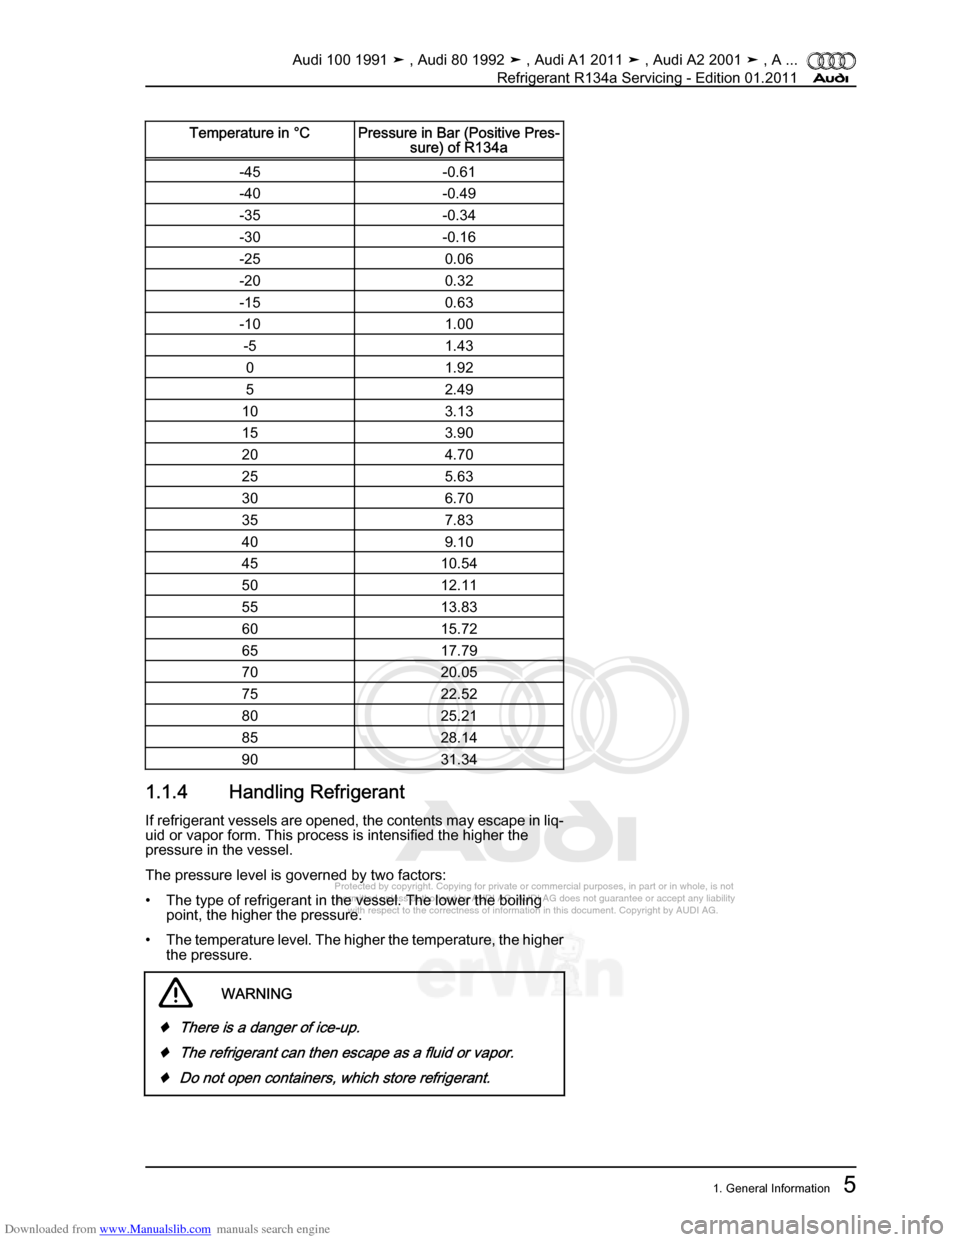 AUDI 100 1991 44 Refrigerant R134a Servising Workshop Manual Downloaded from www.Manualslib.com manuals search engine Protected by copyright. Copying for private or commercial purposes, in p